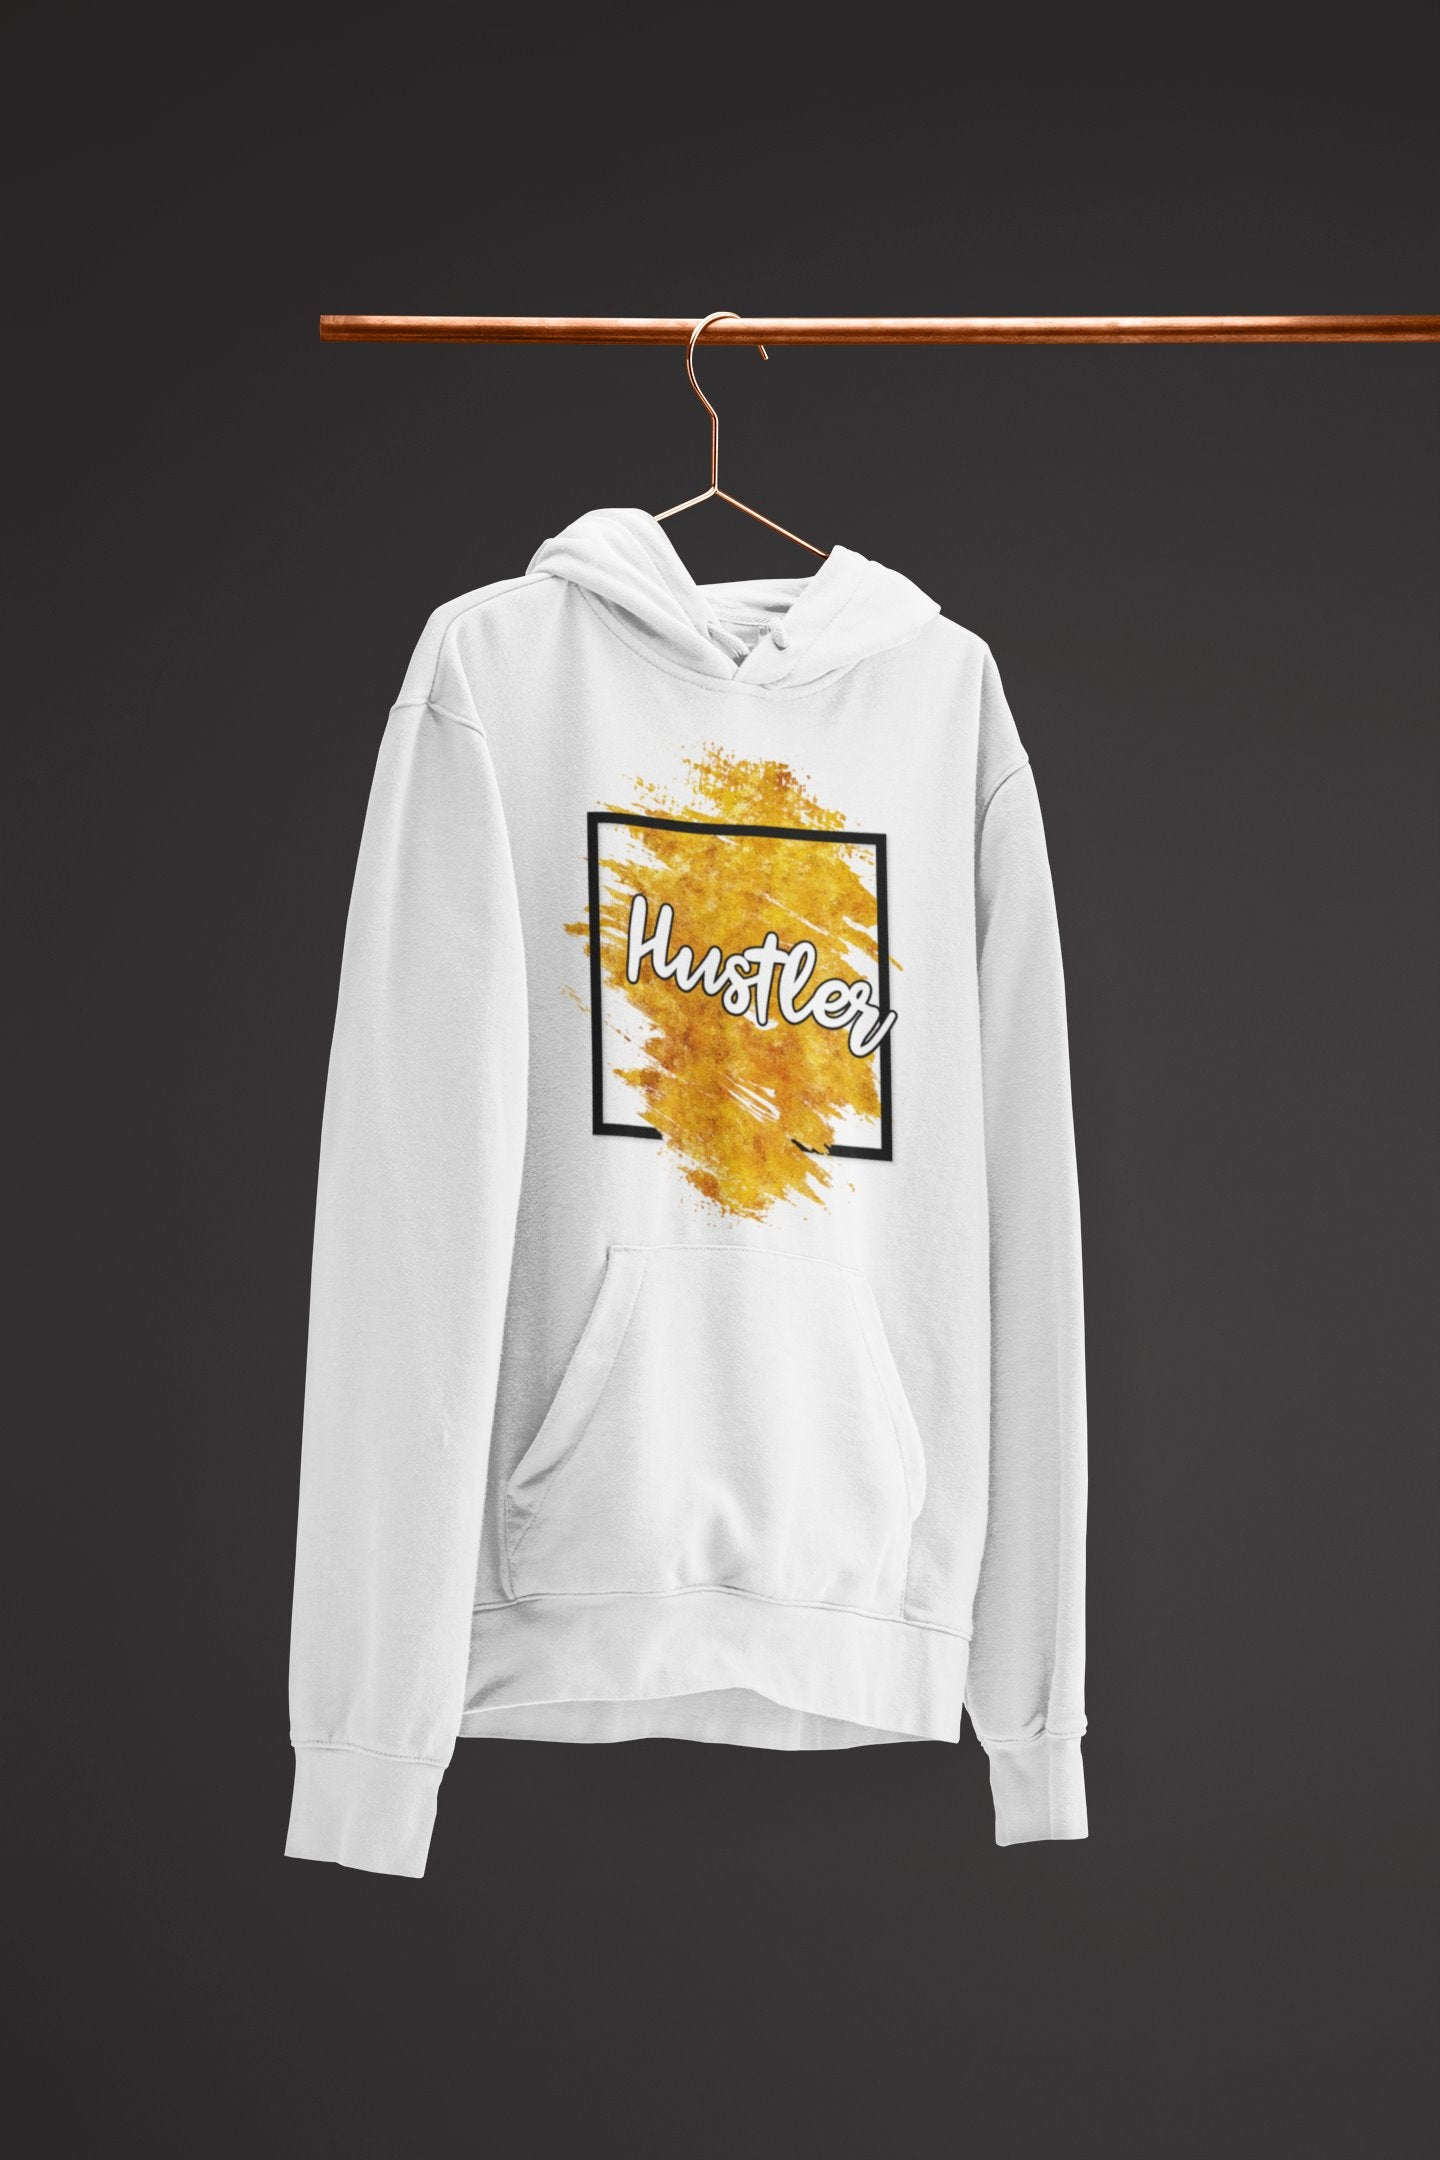 "Mens Hoodie ""Hustler"" Orange Edition WhiteS - Mperior: The Store For Entrepreneurs, Hustlers and Achievers"